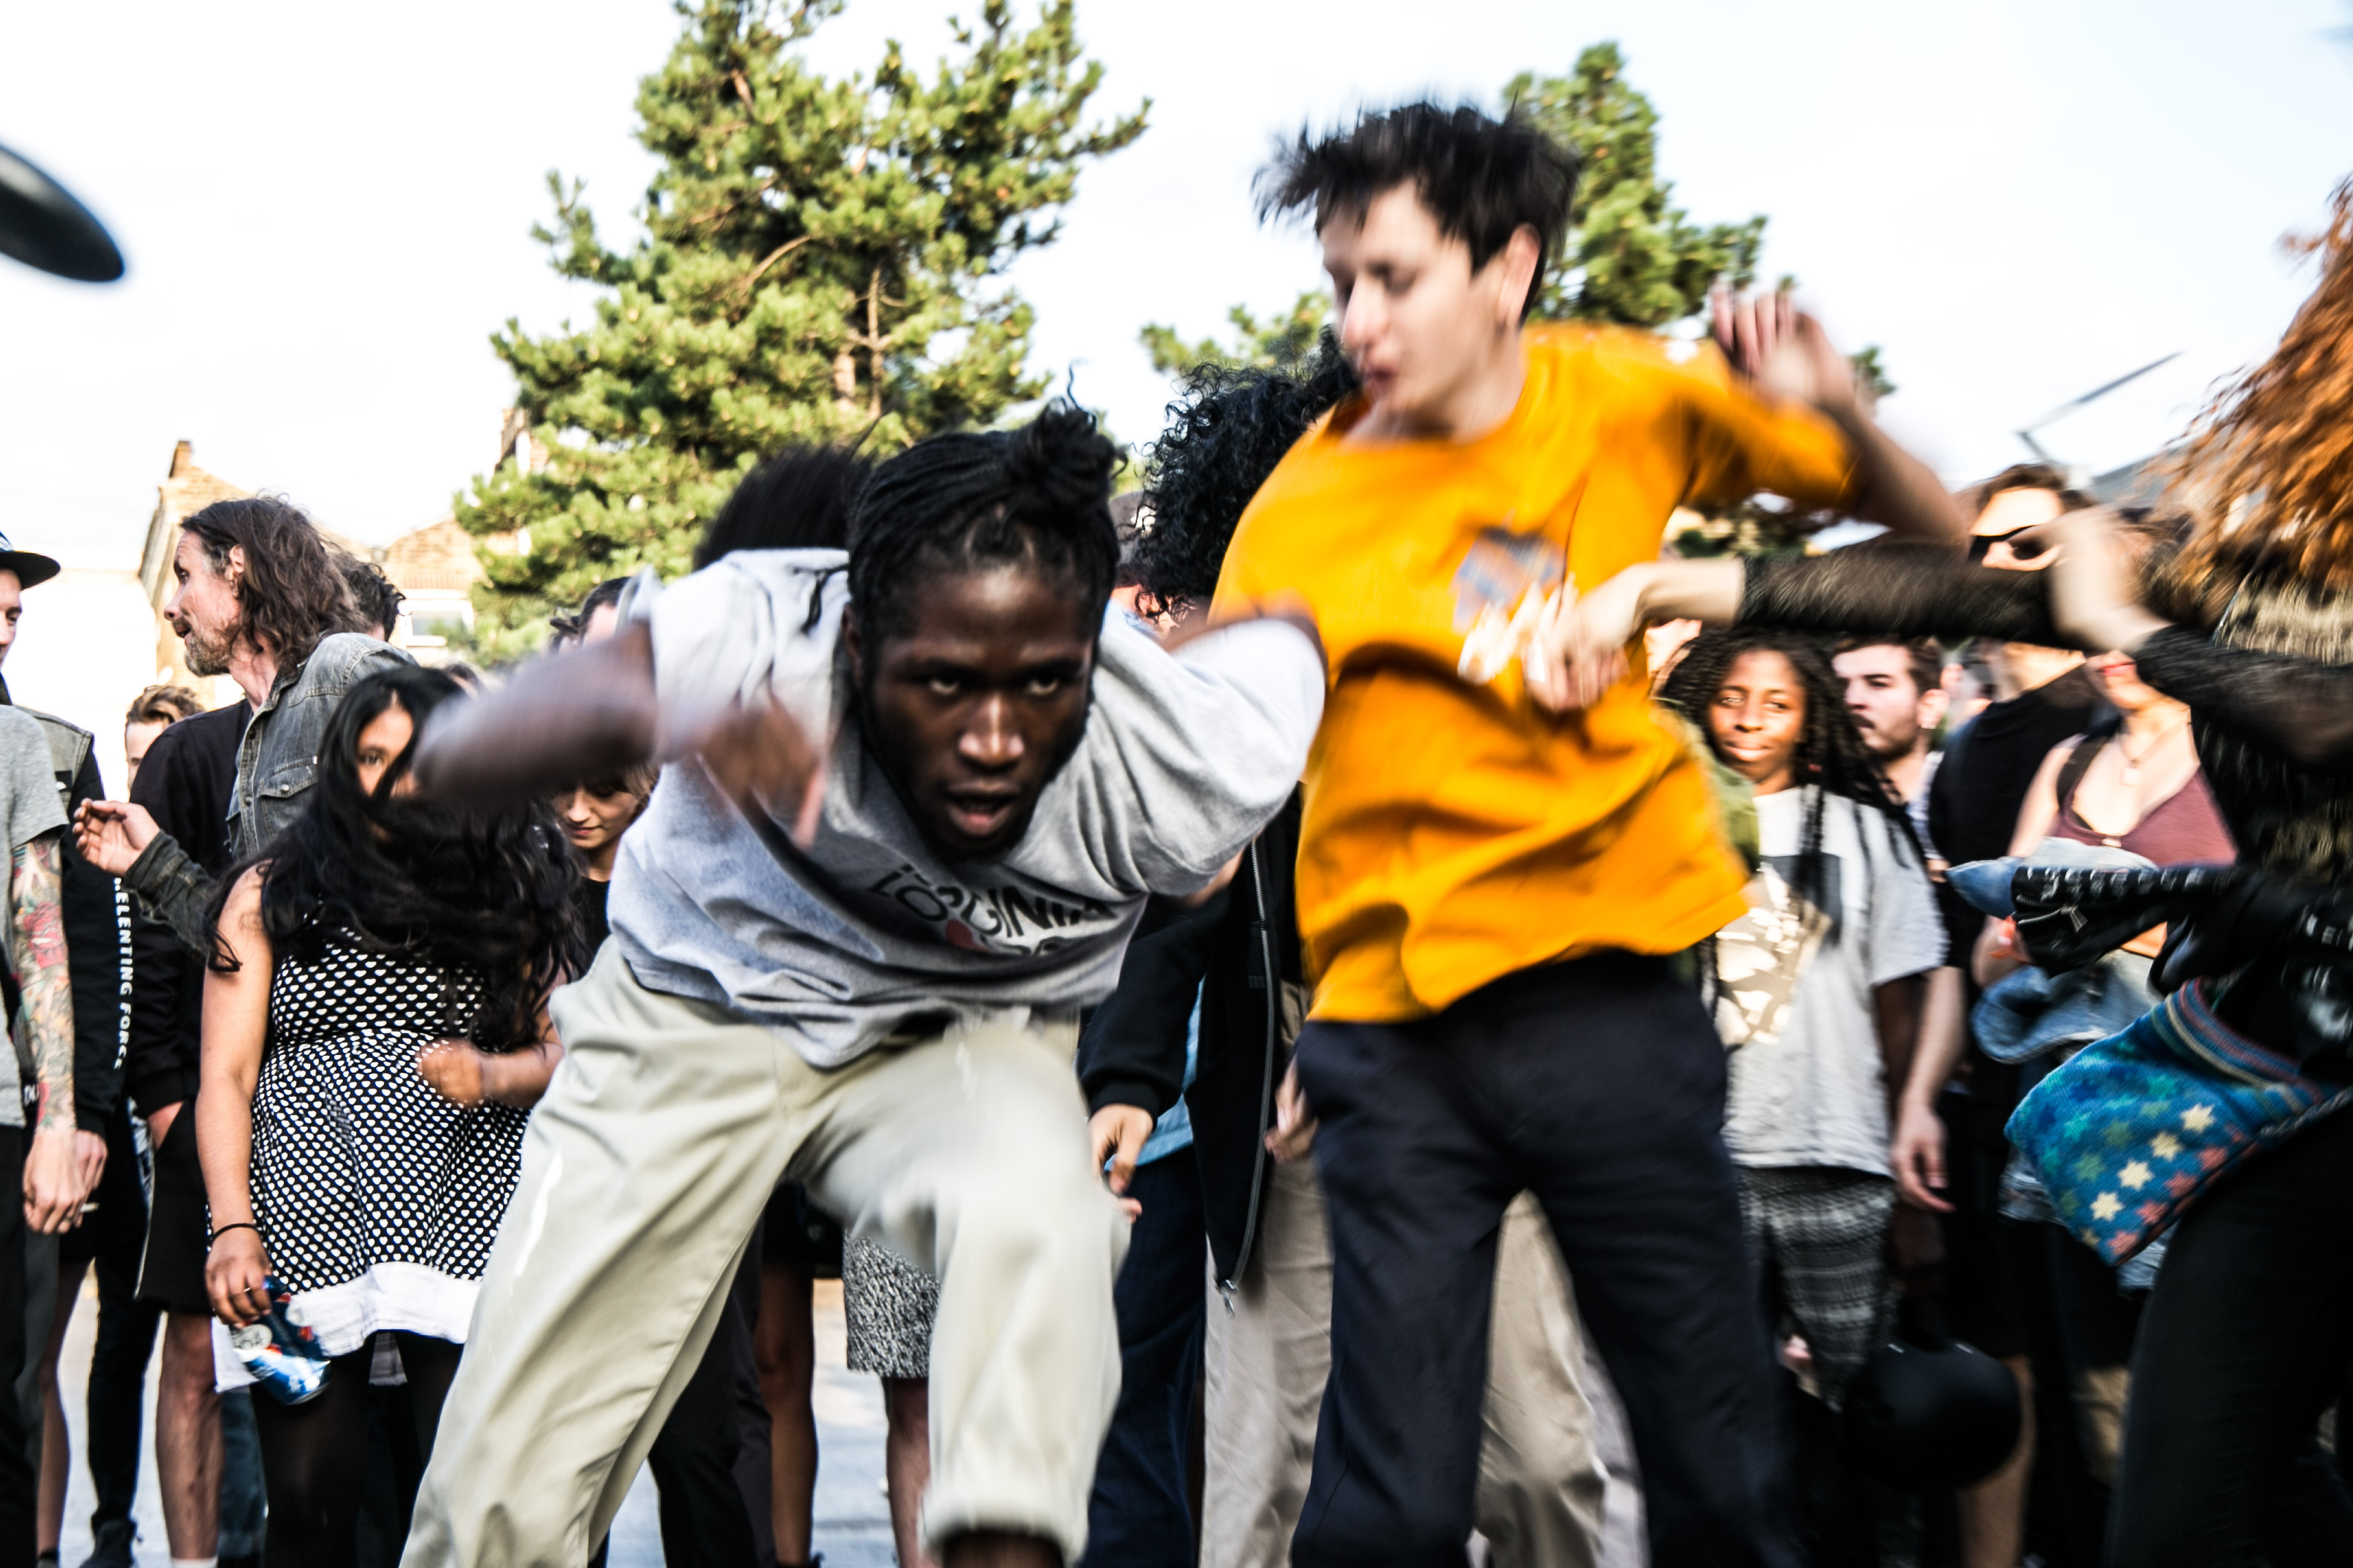 Show Me The Body bring 'Body War' to a pop-up show in London's Gillett Square